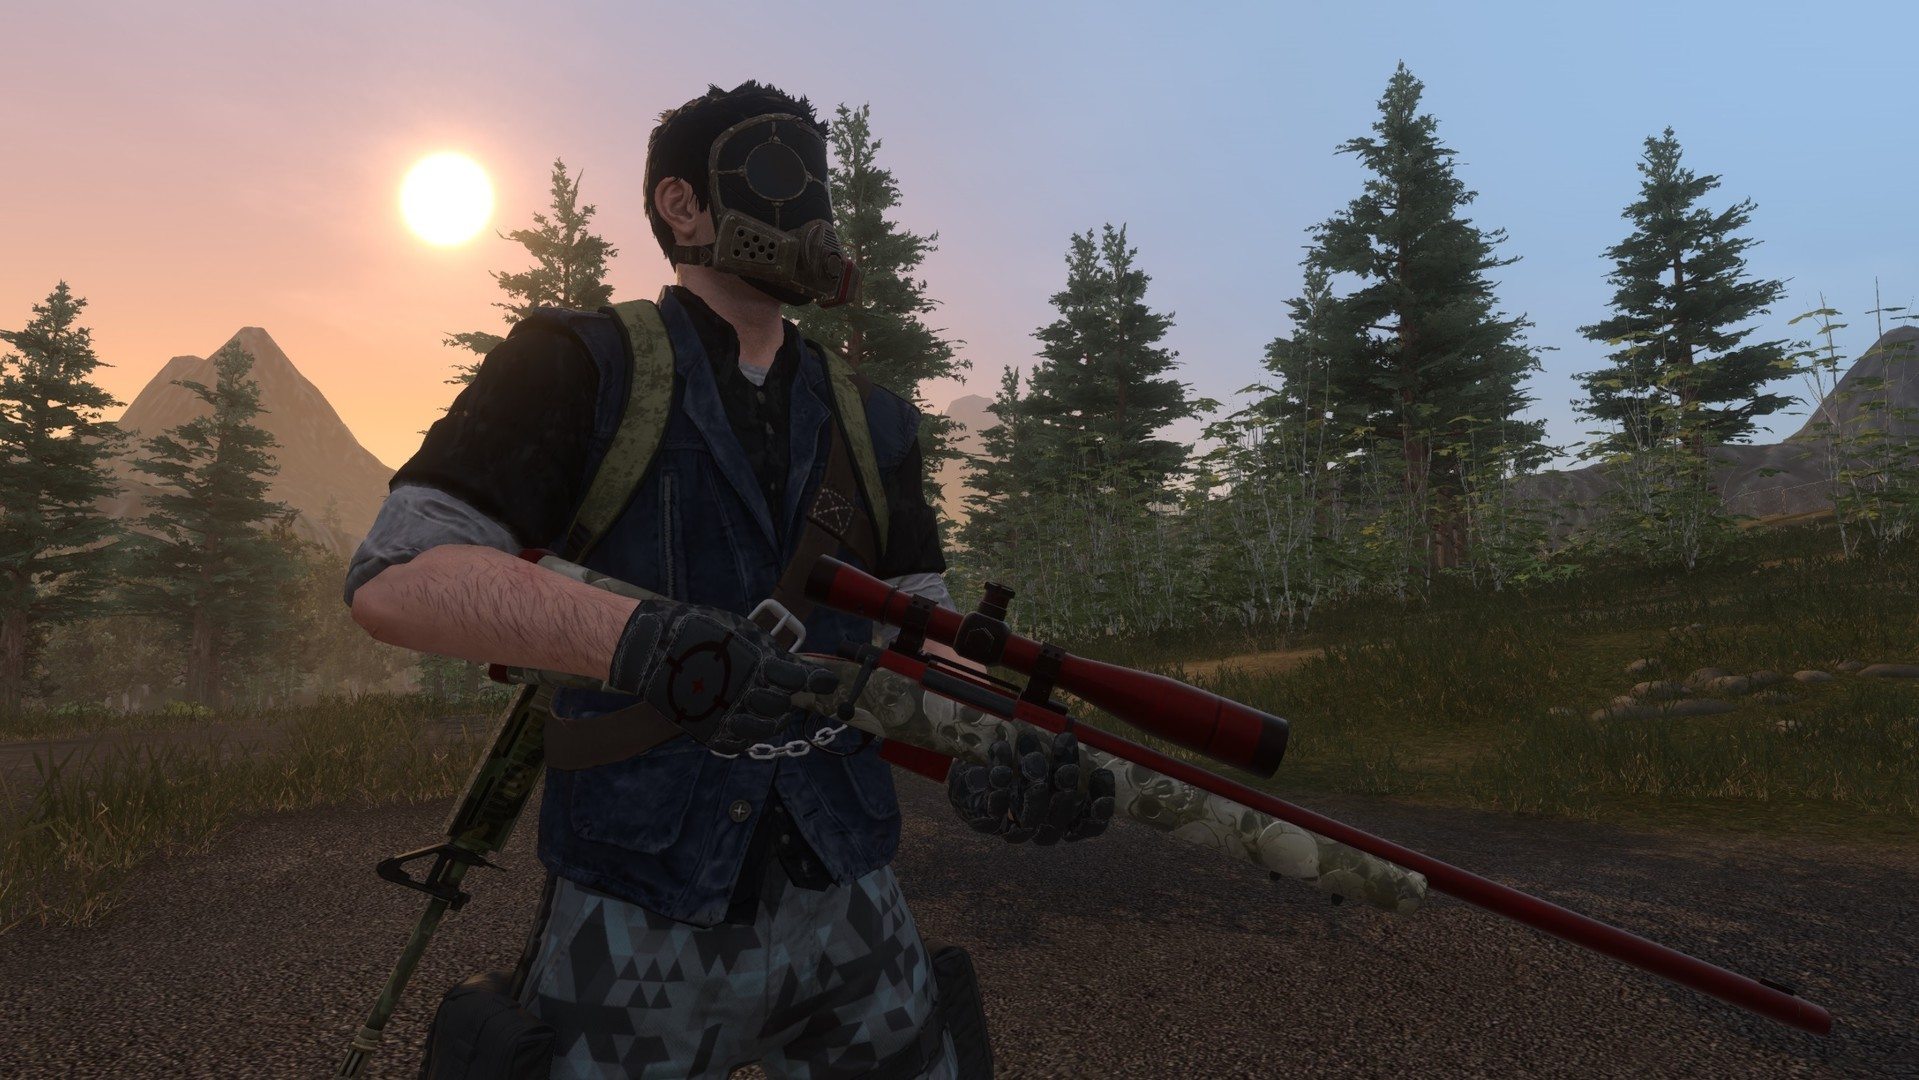 H1Z1 is going free-to-play today